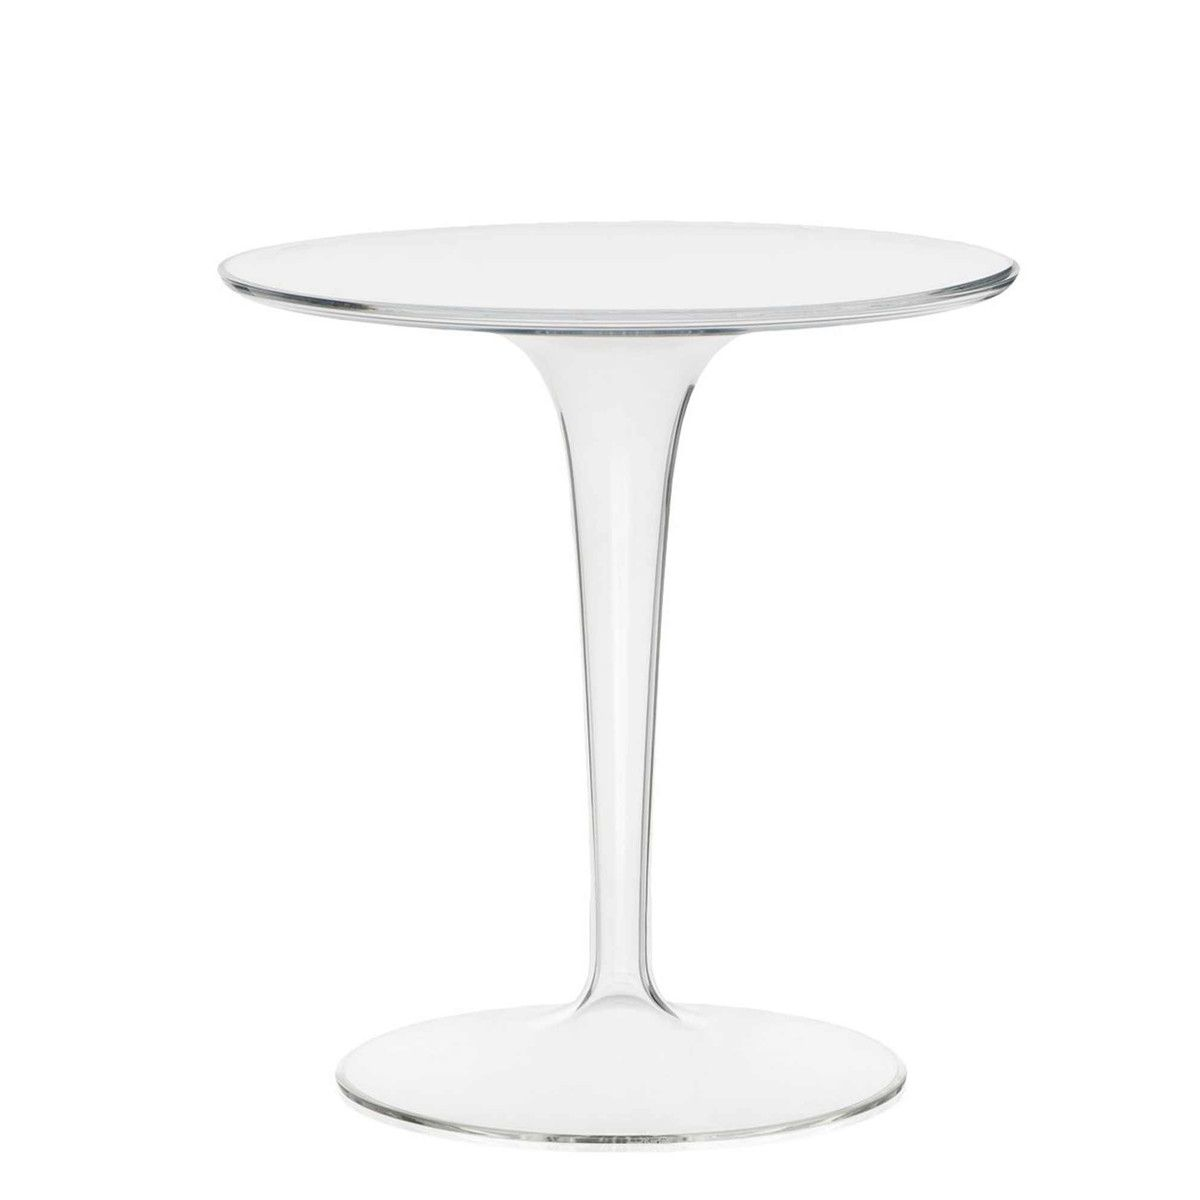 kartell  tip top beistelltisch transparent  tops tables and  - kartell  tip top beistelltisch transparent